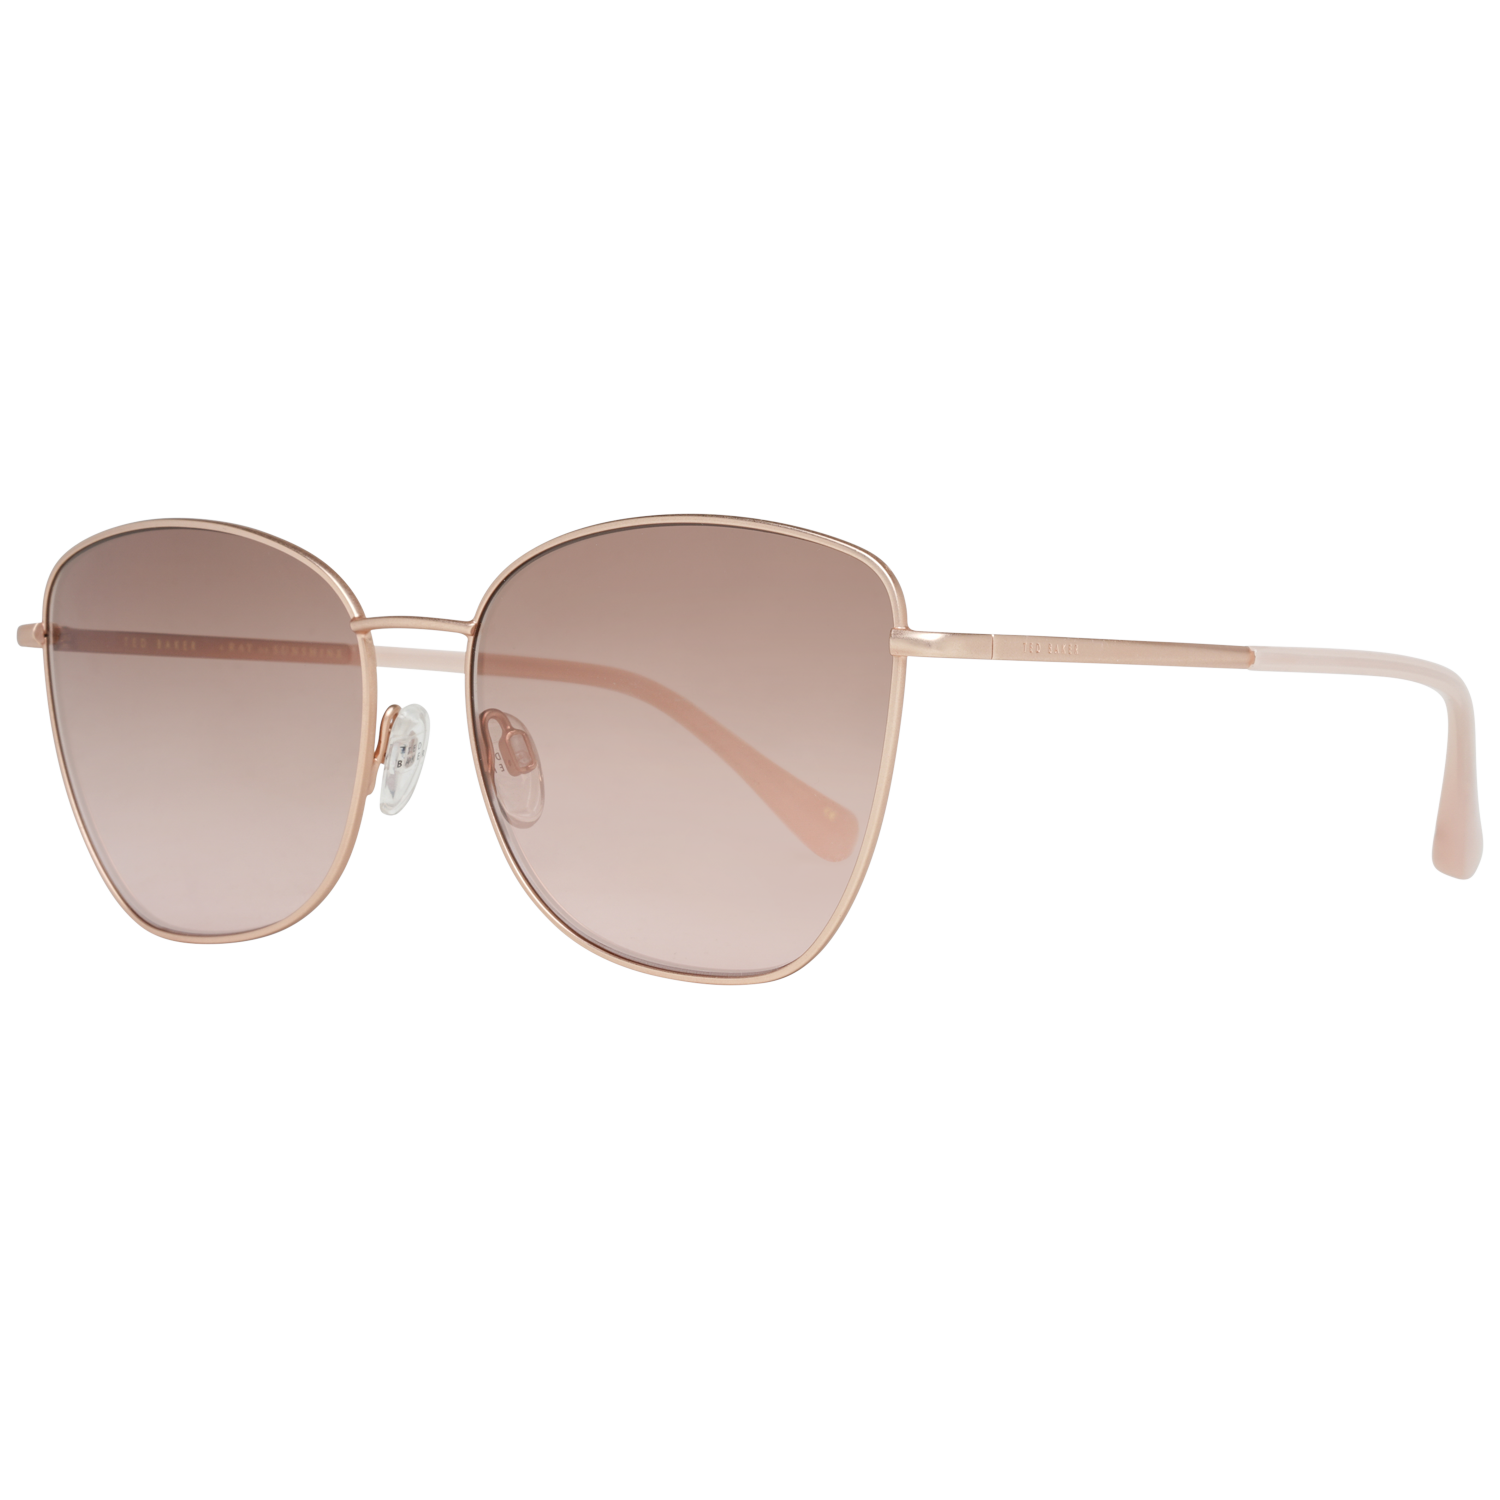 Ted Baker TB1522 402 59 59-16